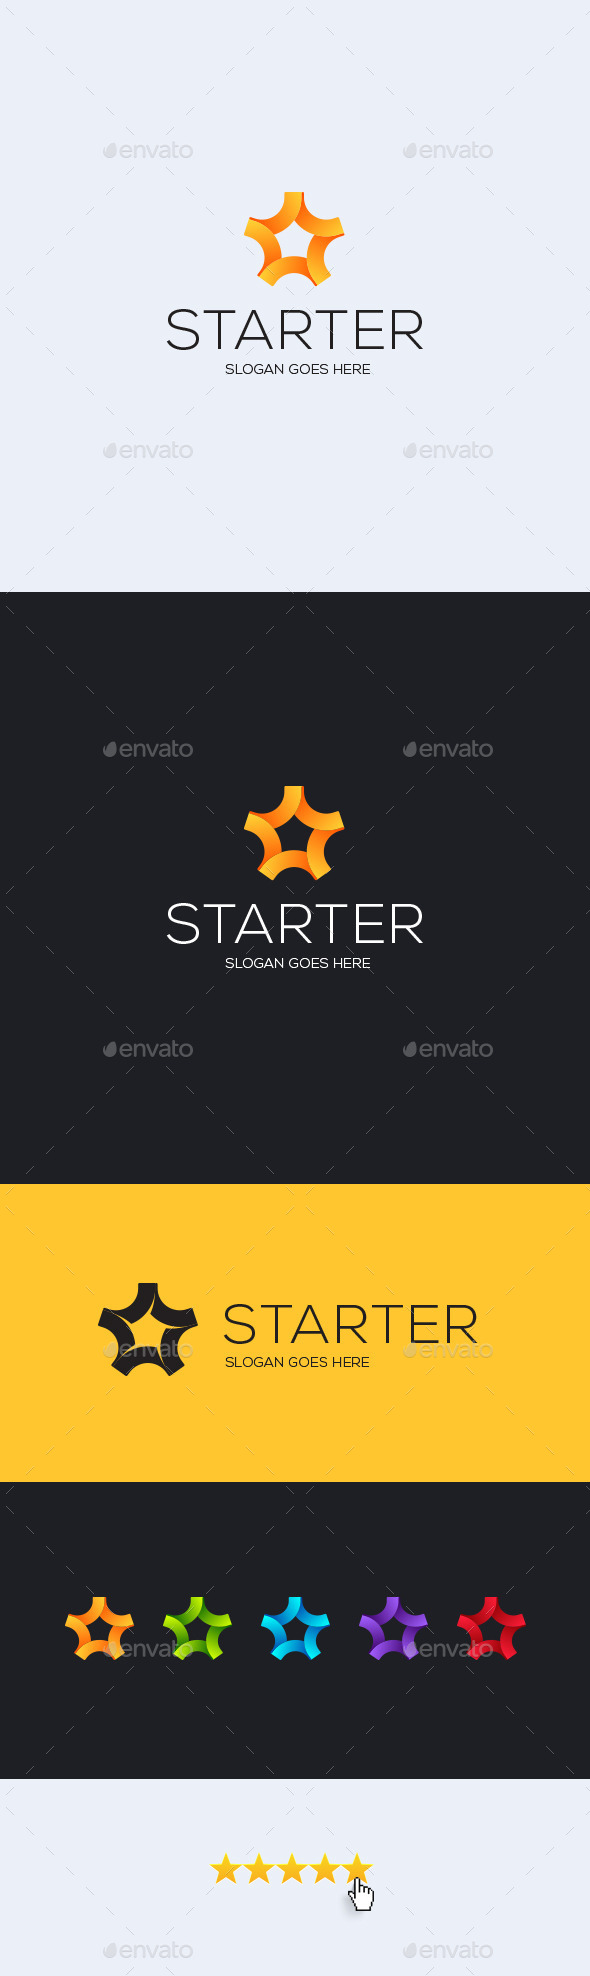 GraphicRiver Starter Logo Template 11946991